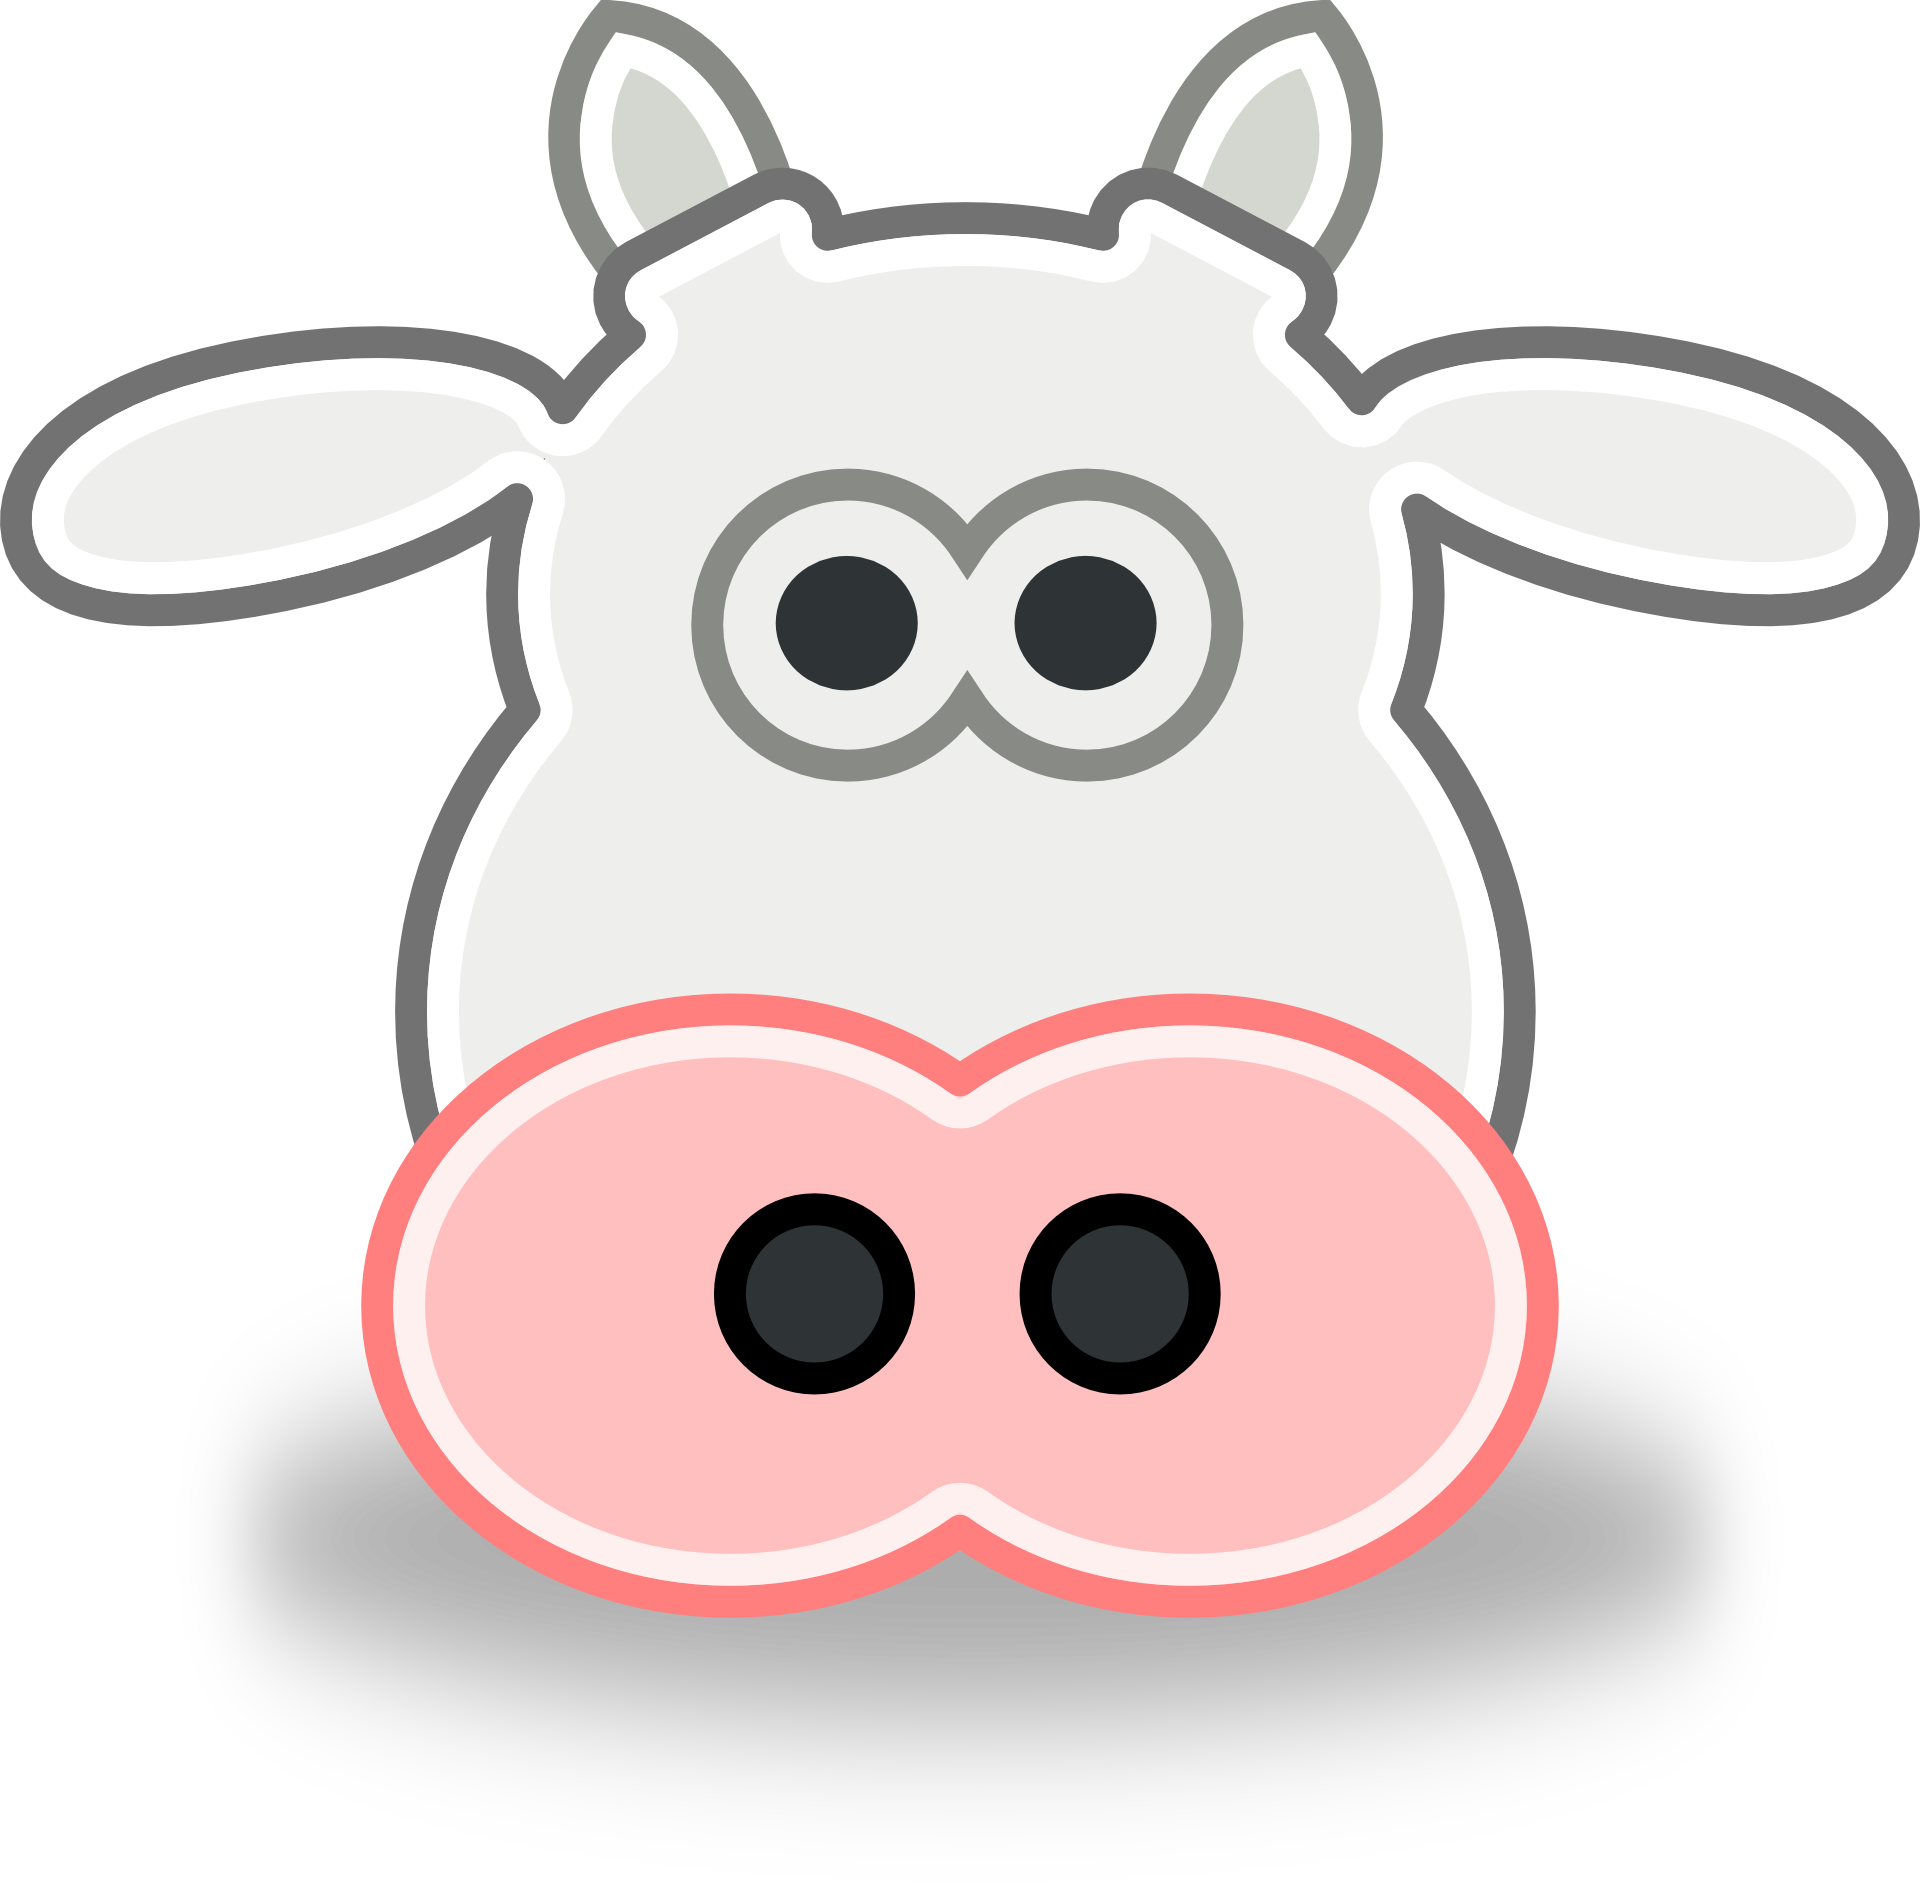 Clipart,picture of white cow with pink nose free image.